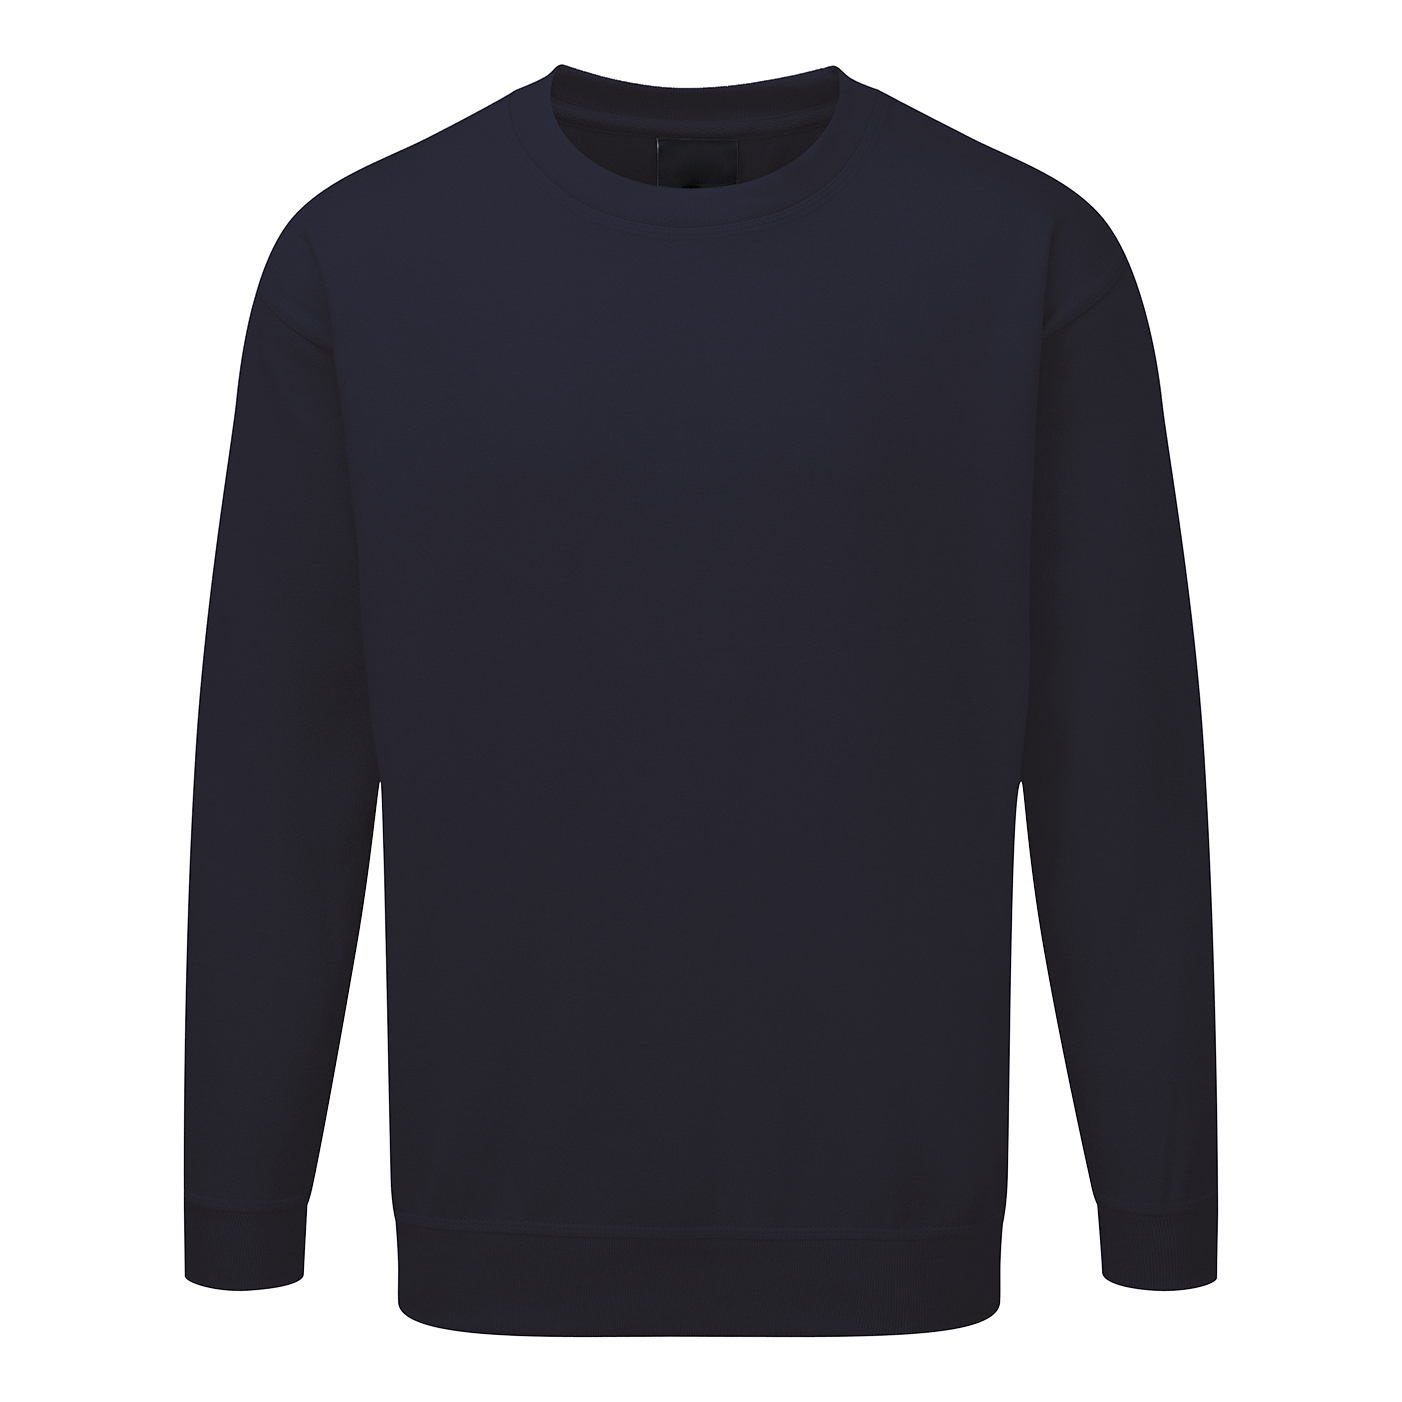 Click Workwear Sweatshirt Polycotton 300gsm 2XL Navy Blue Ref CLPCSNXXL 1-3 Days Lead Time